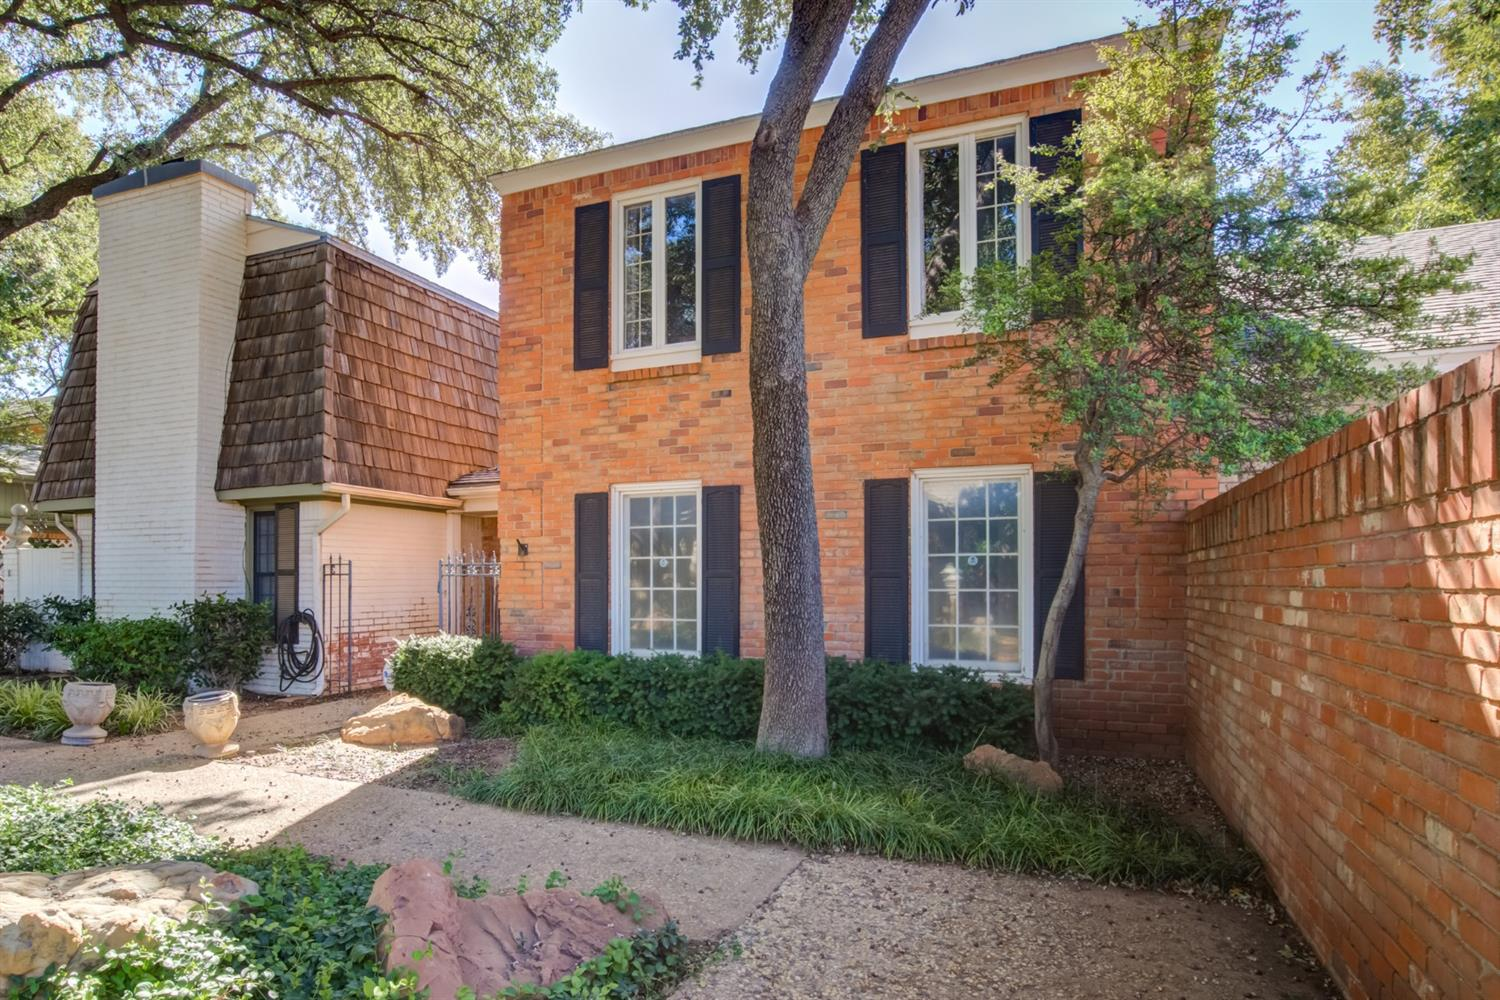 4610 Indiana Avenue, Lubbock in Lubbock County, TX 79413 Home for Sale